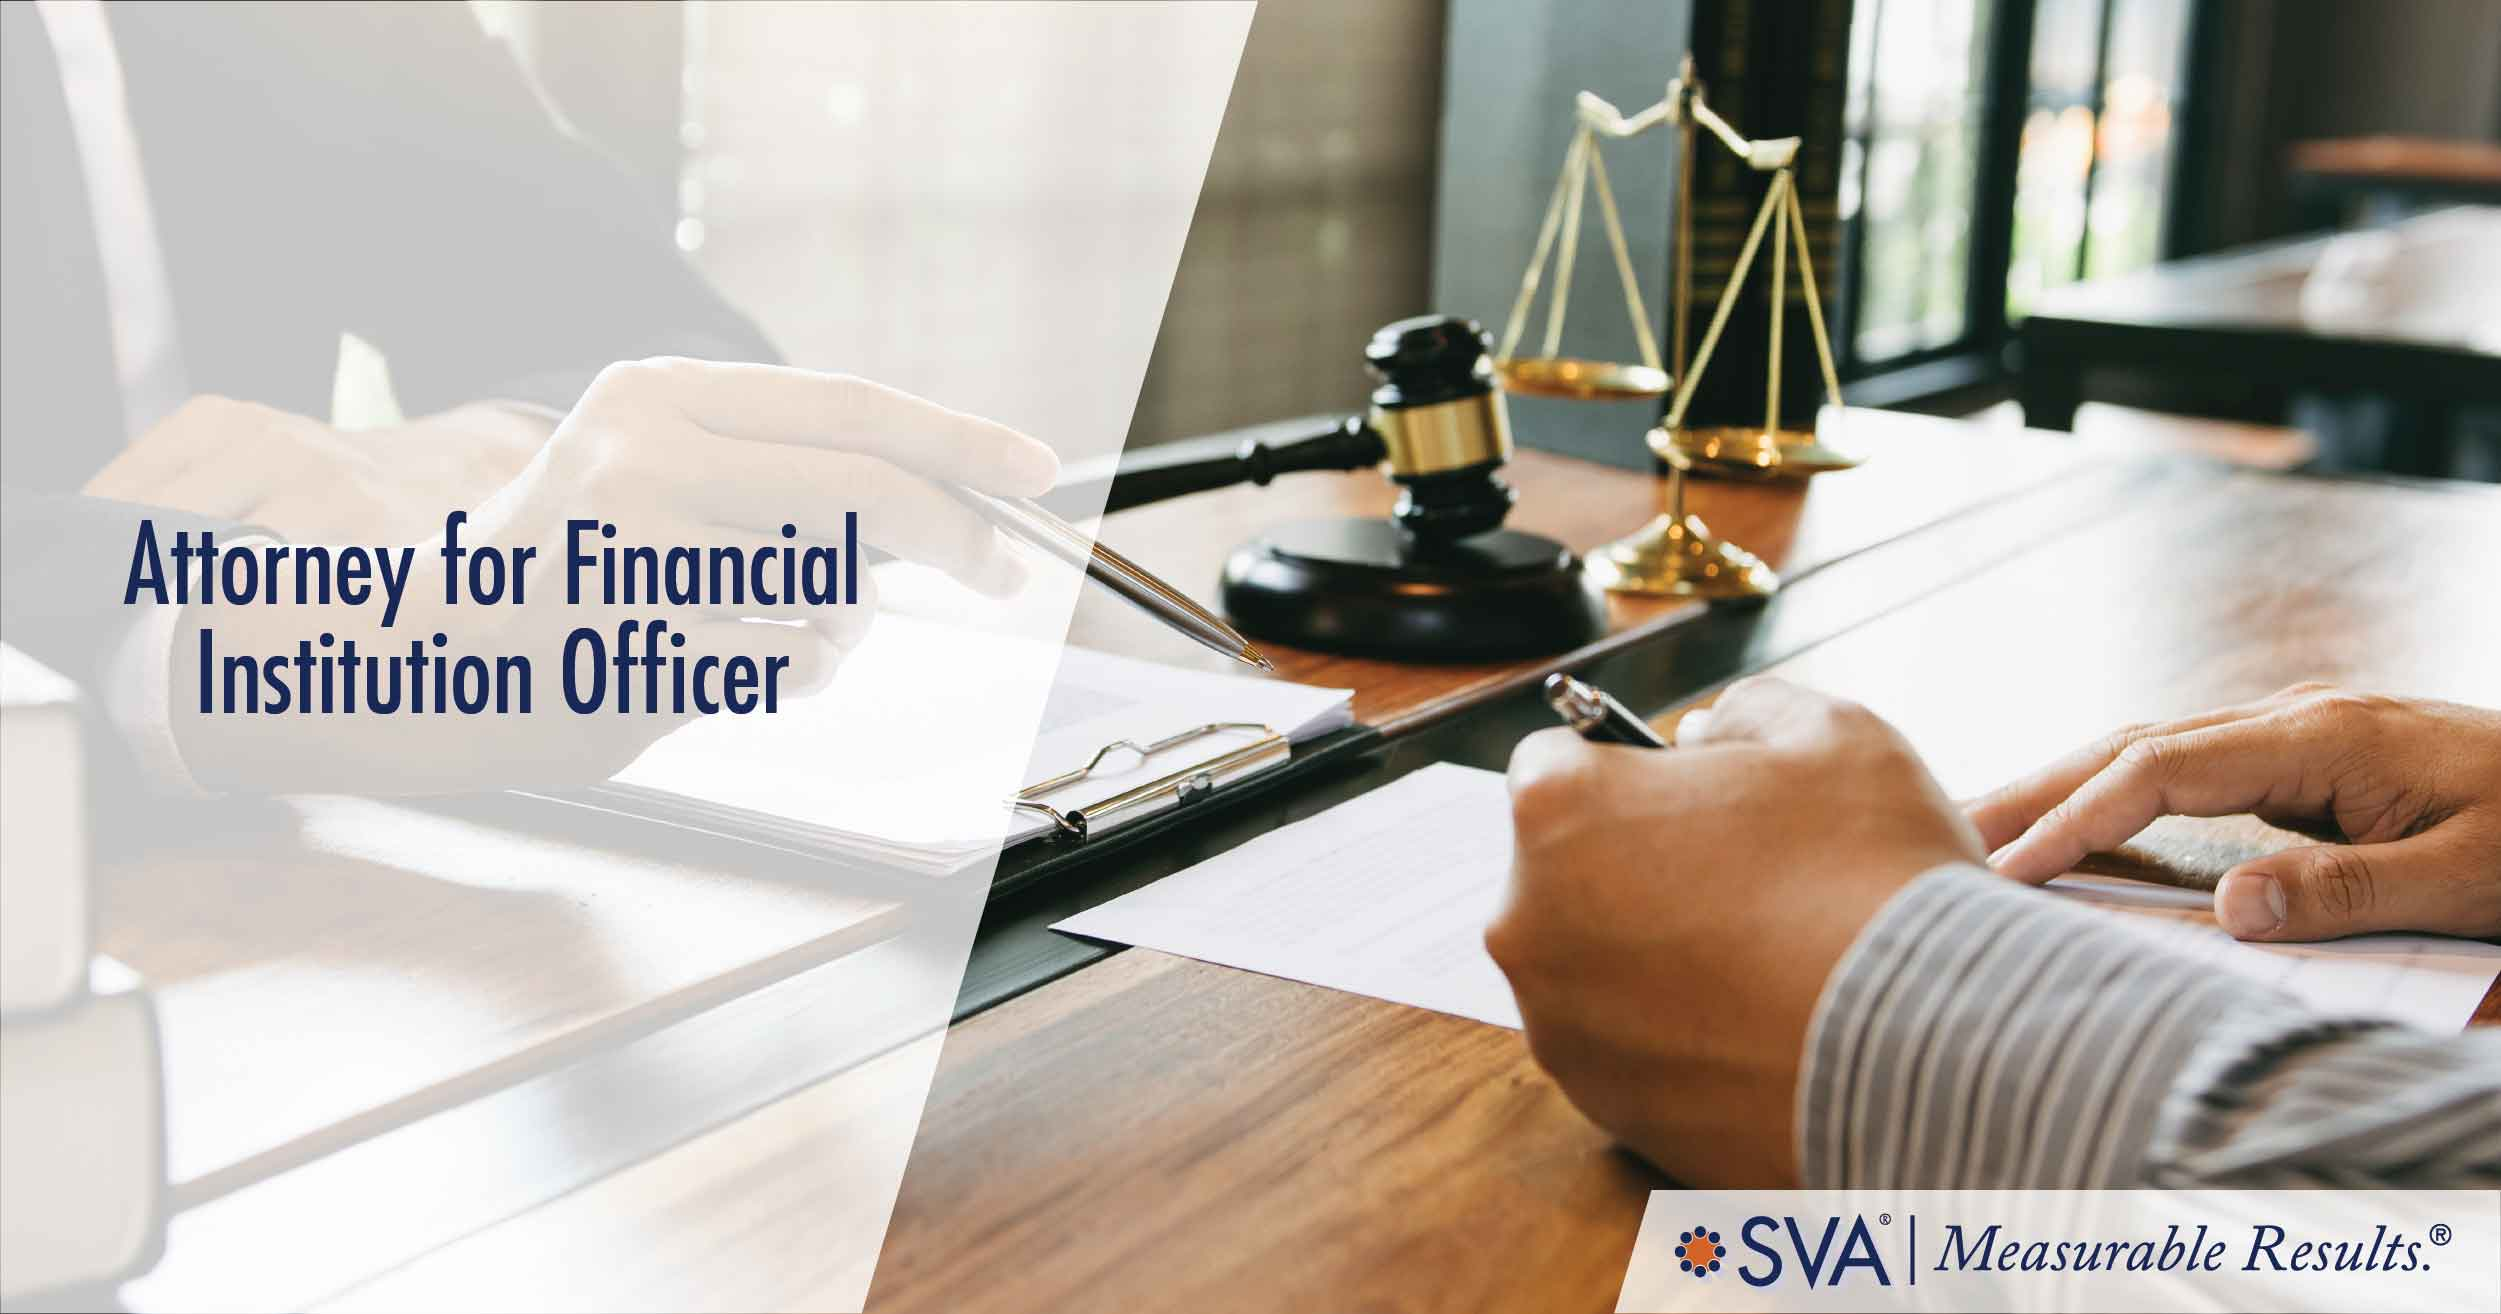 Attorney For Financial Institution Officer